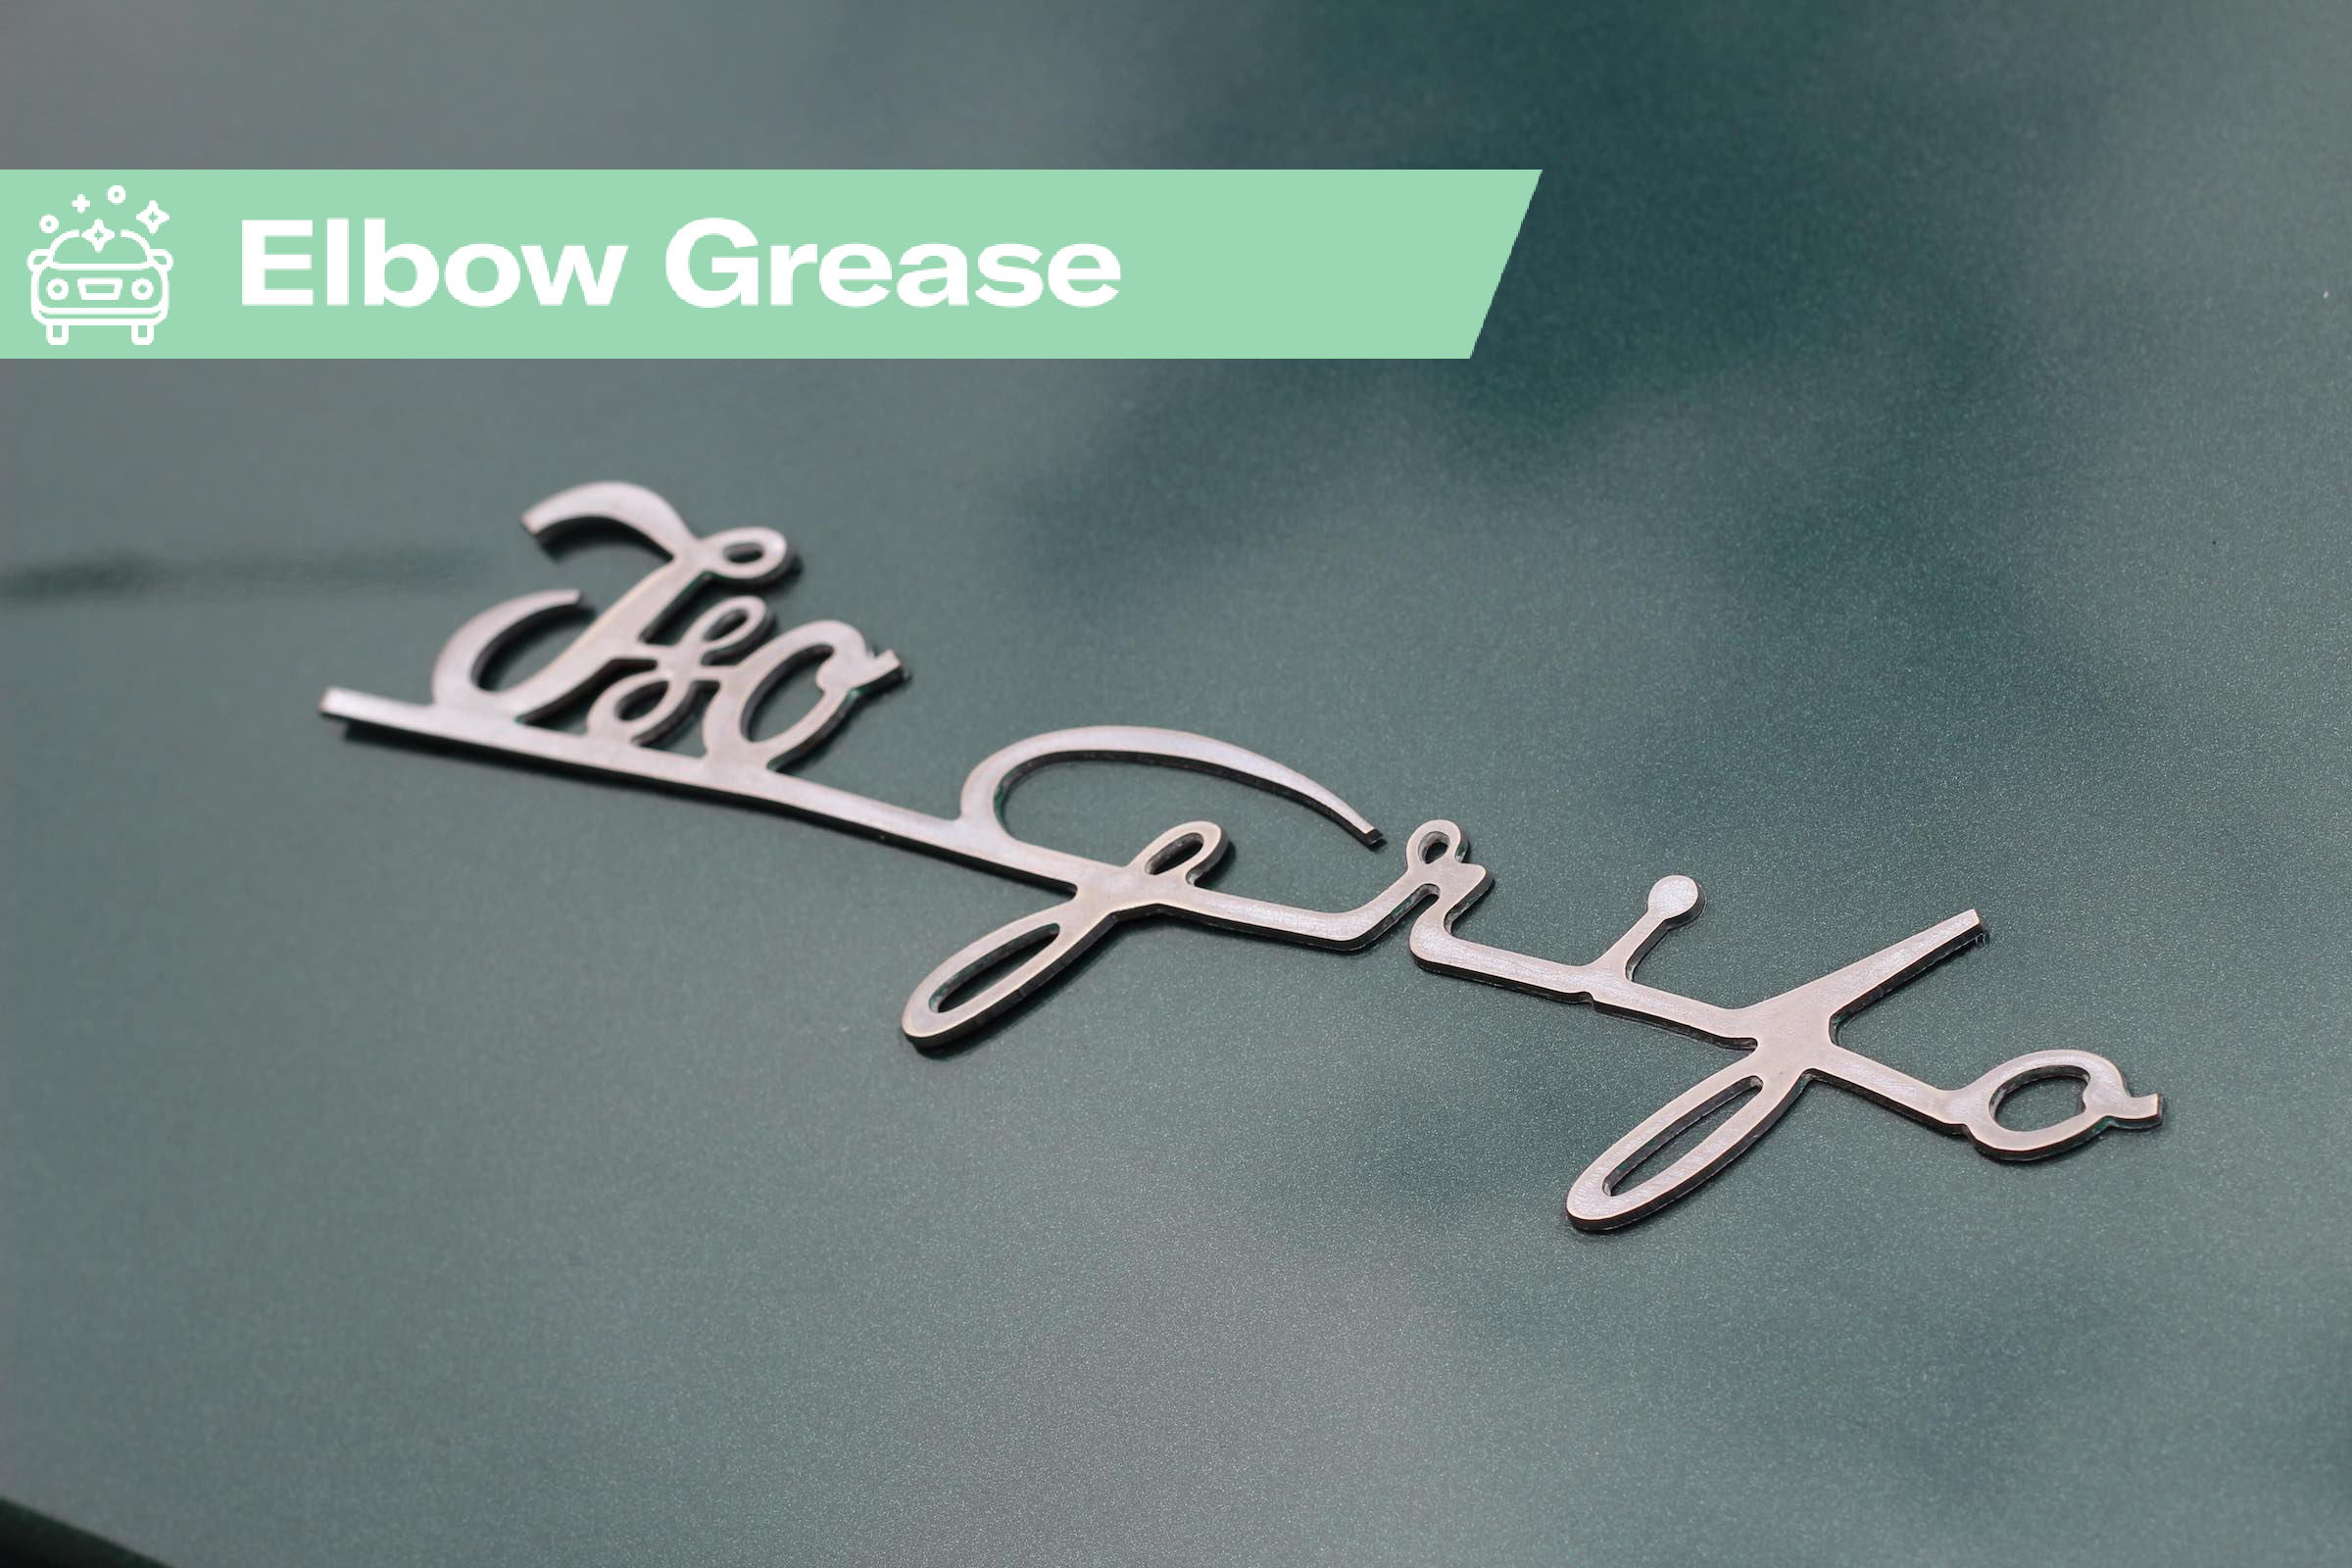 Elbow Grease: Preparing your car for a concours event